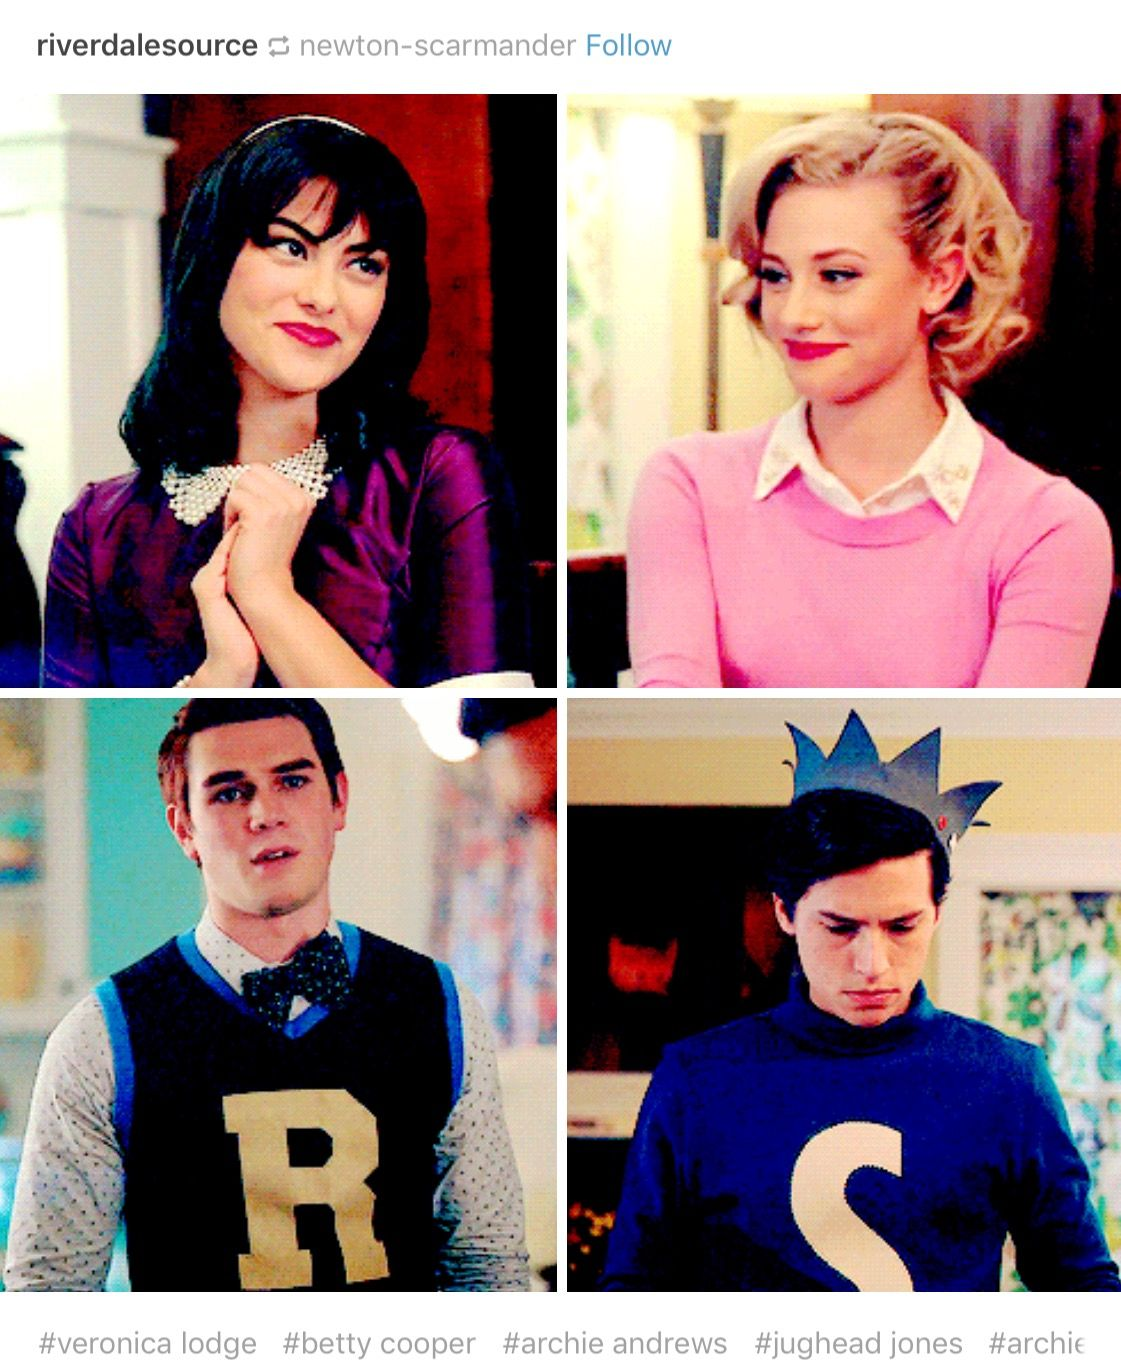 Riverdale Cast Wearing Original Outfits From Archie Comics D | Riverdale/Archie Comics | Pinterest